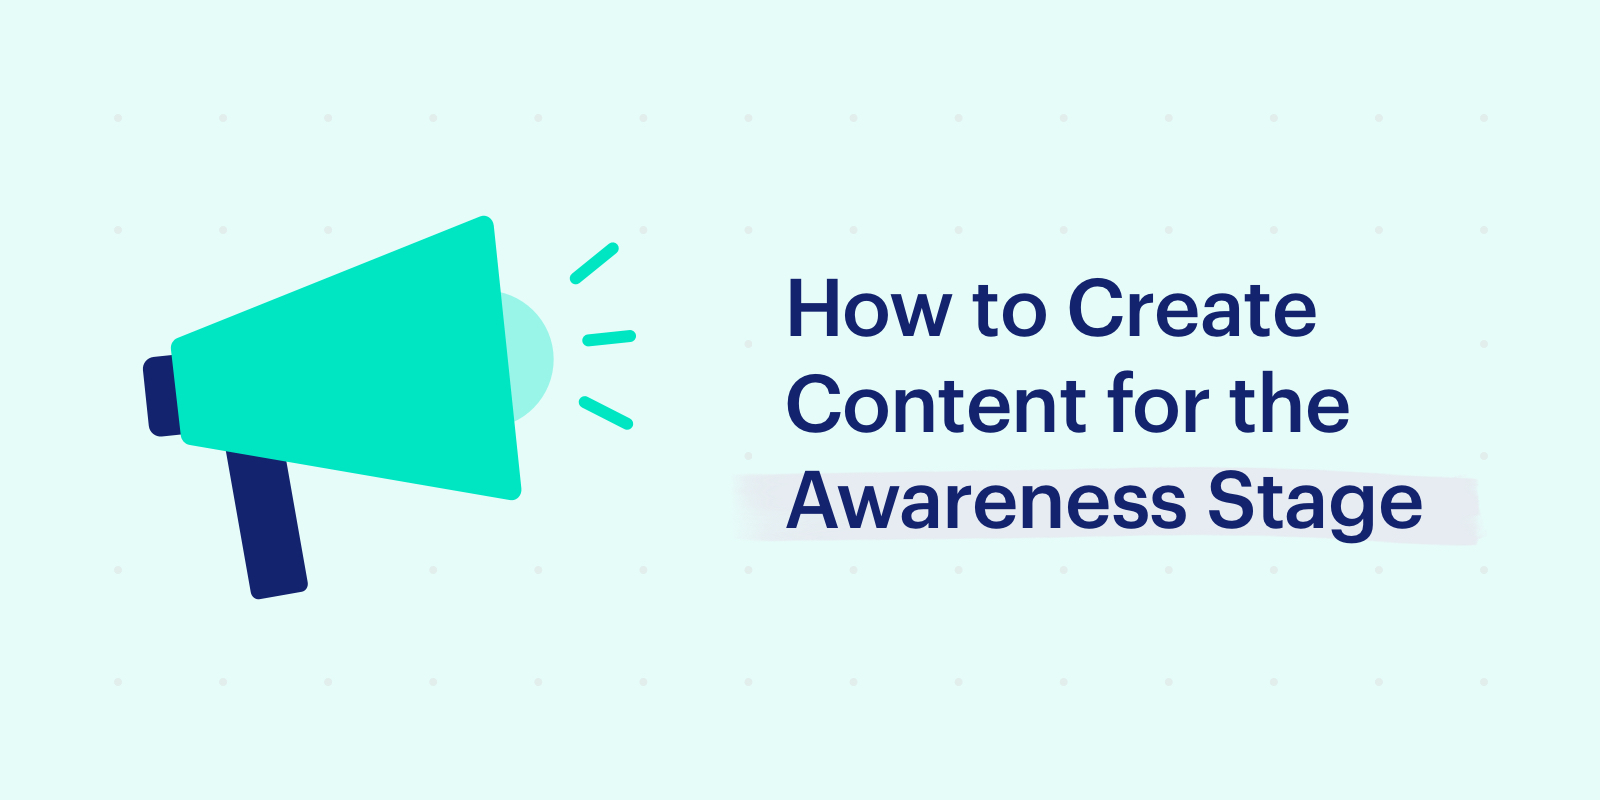 How to Create Content for the Awareness Stage